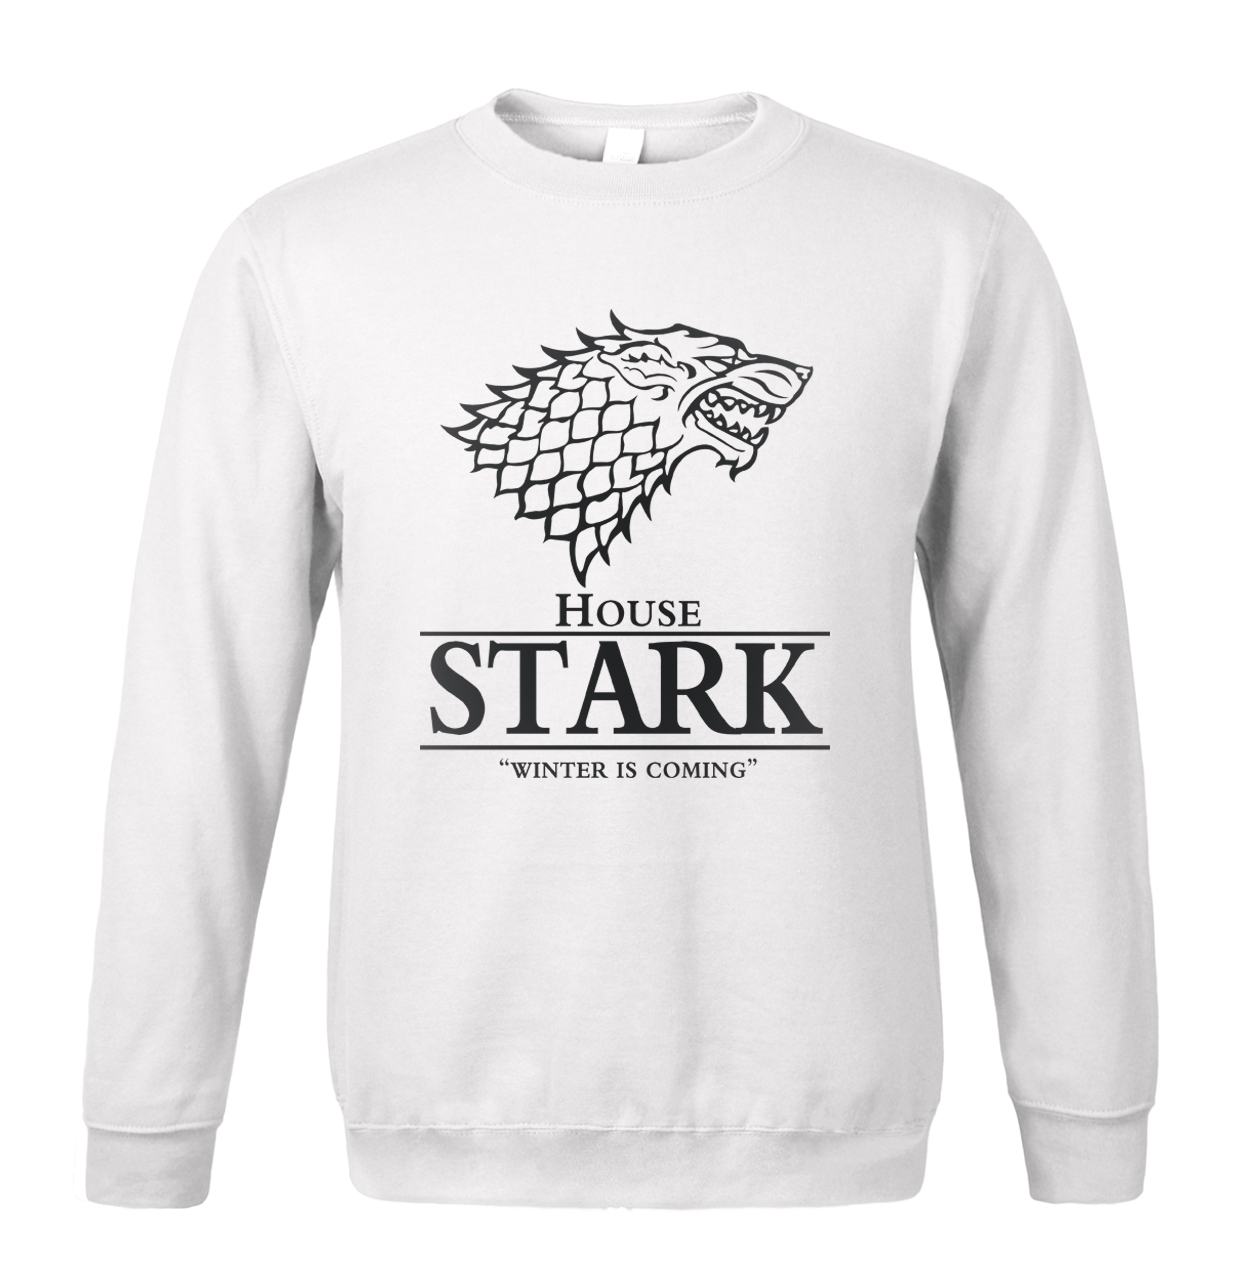 Sweatshirt men 2019 spring winter House Stark print men's sportswear The Song of Ice and Fire Winter Is Coming hoodies harajuku